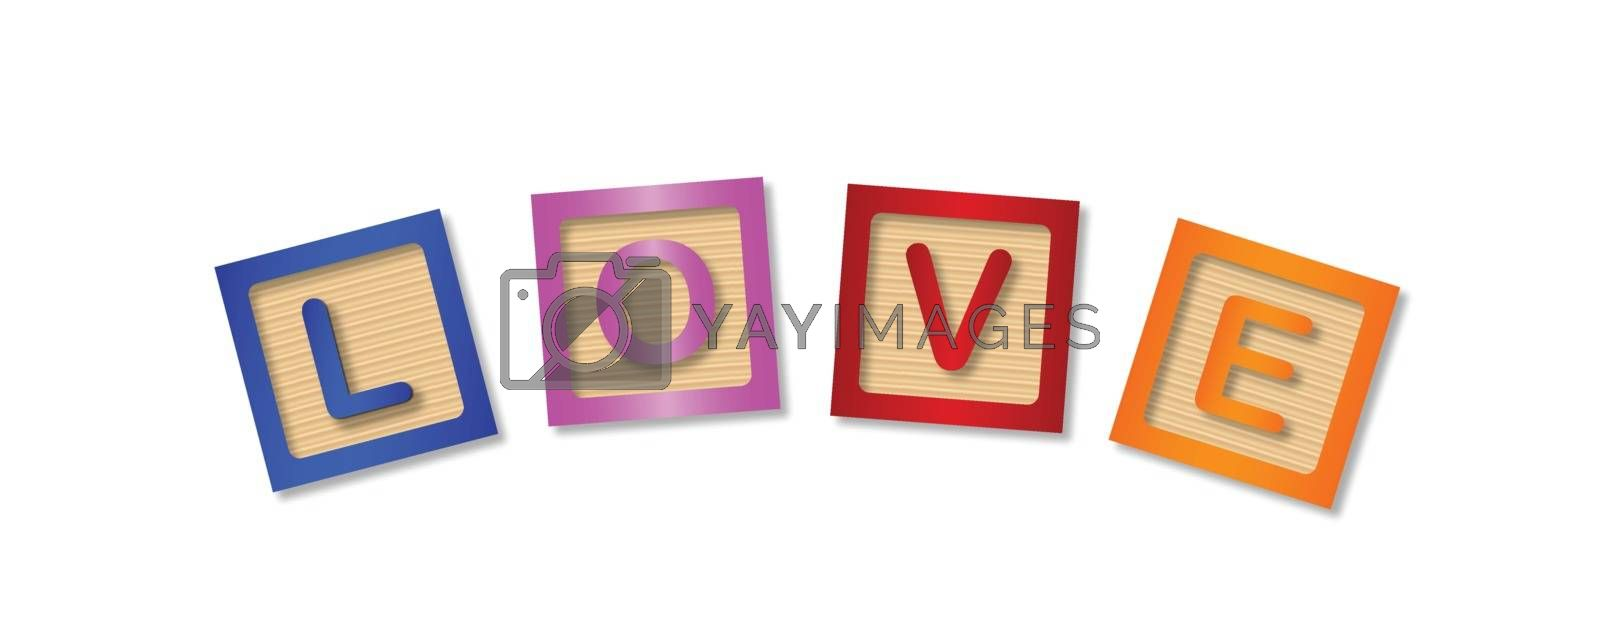 The word love made up from wooden blocks over a white background